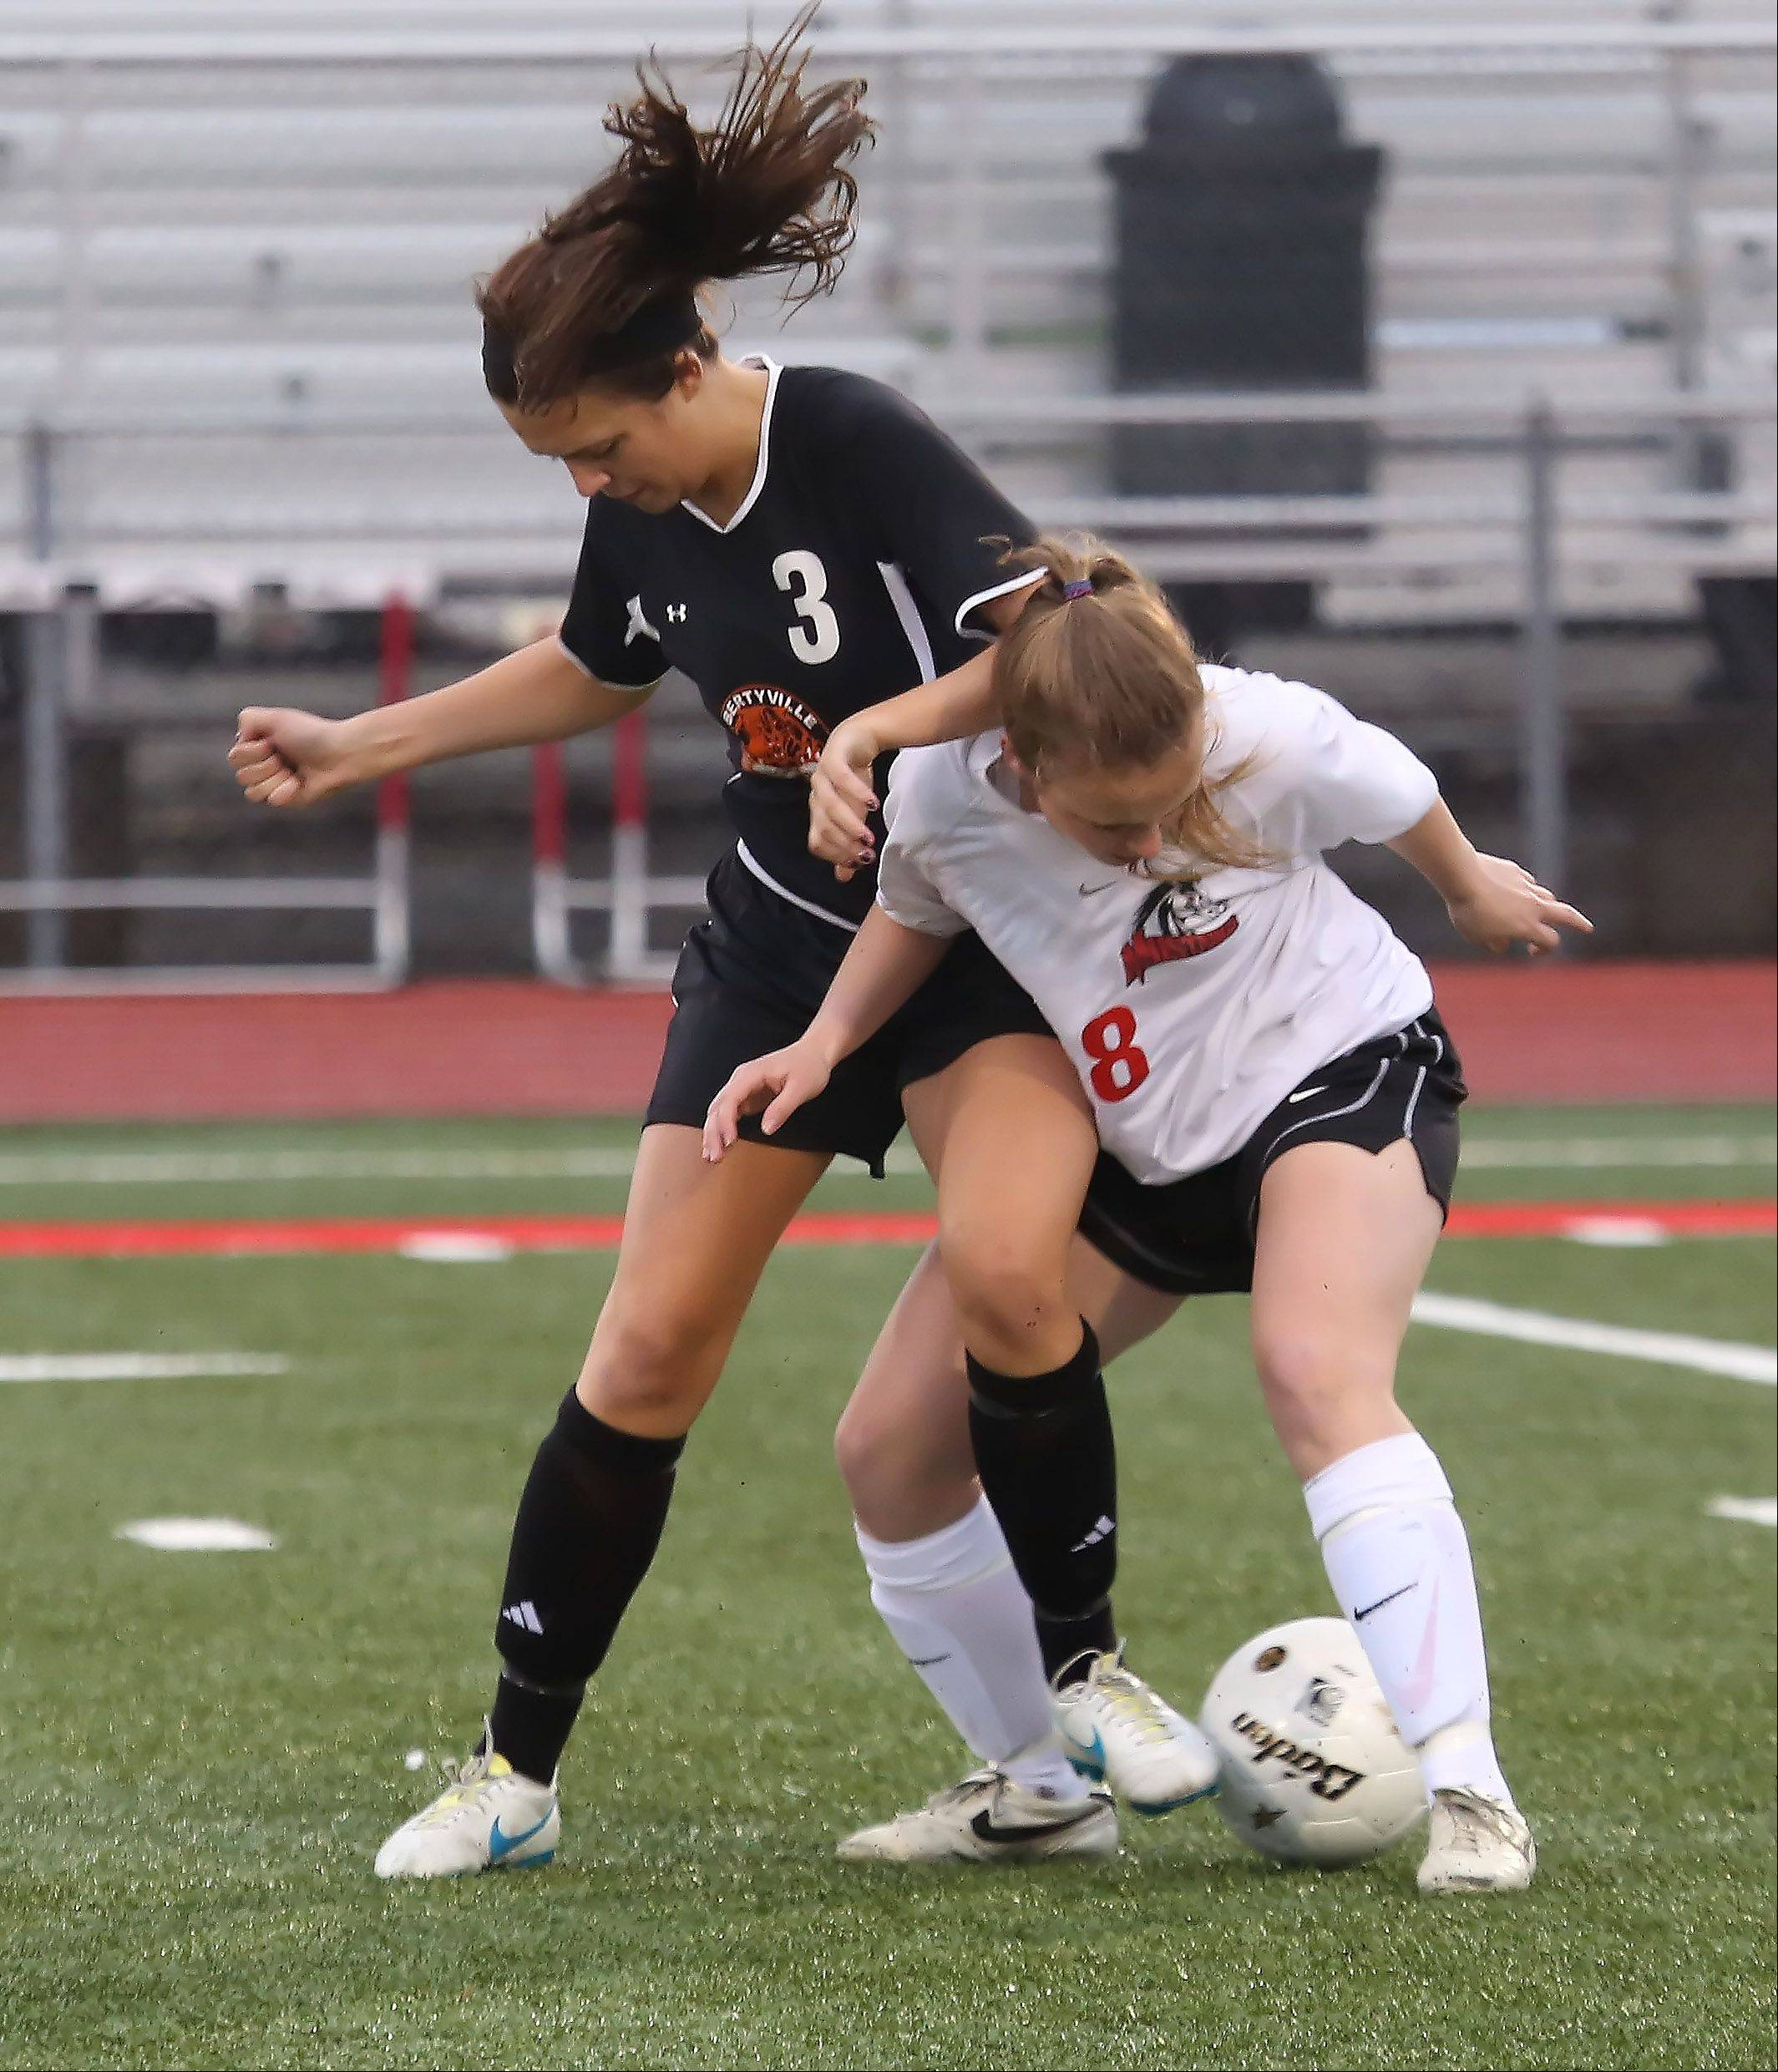 Mundelein midfielder Kelly Grove battles Libertyville midfielder Jessica Stanley Thursday at Mundelein.